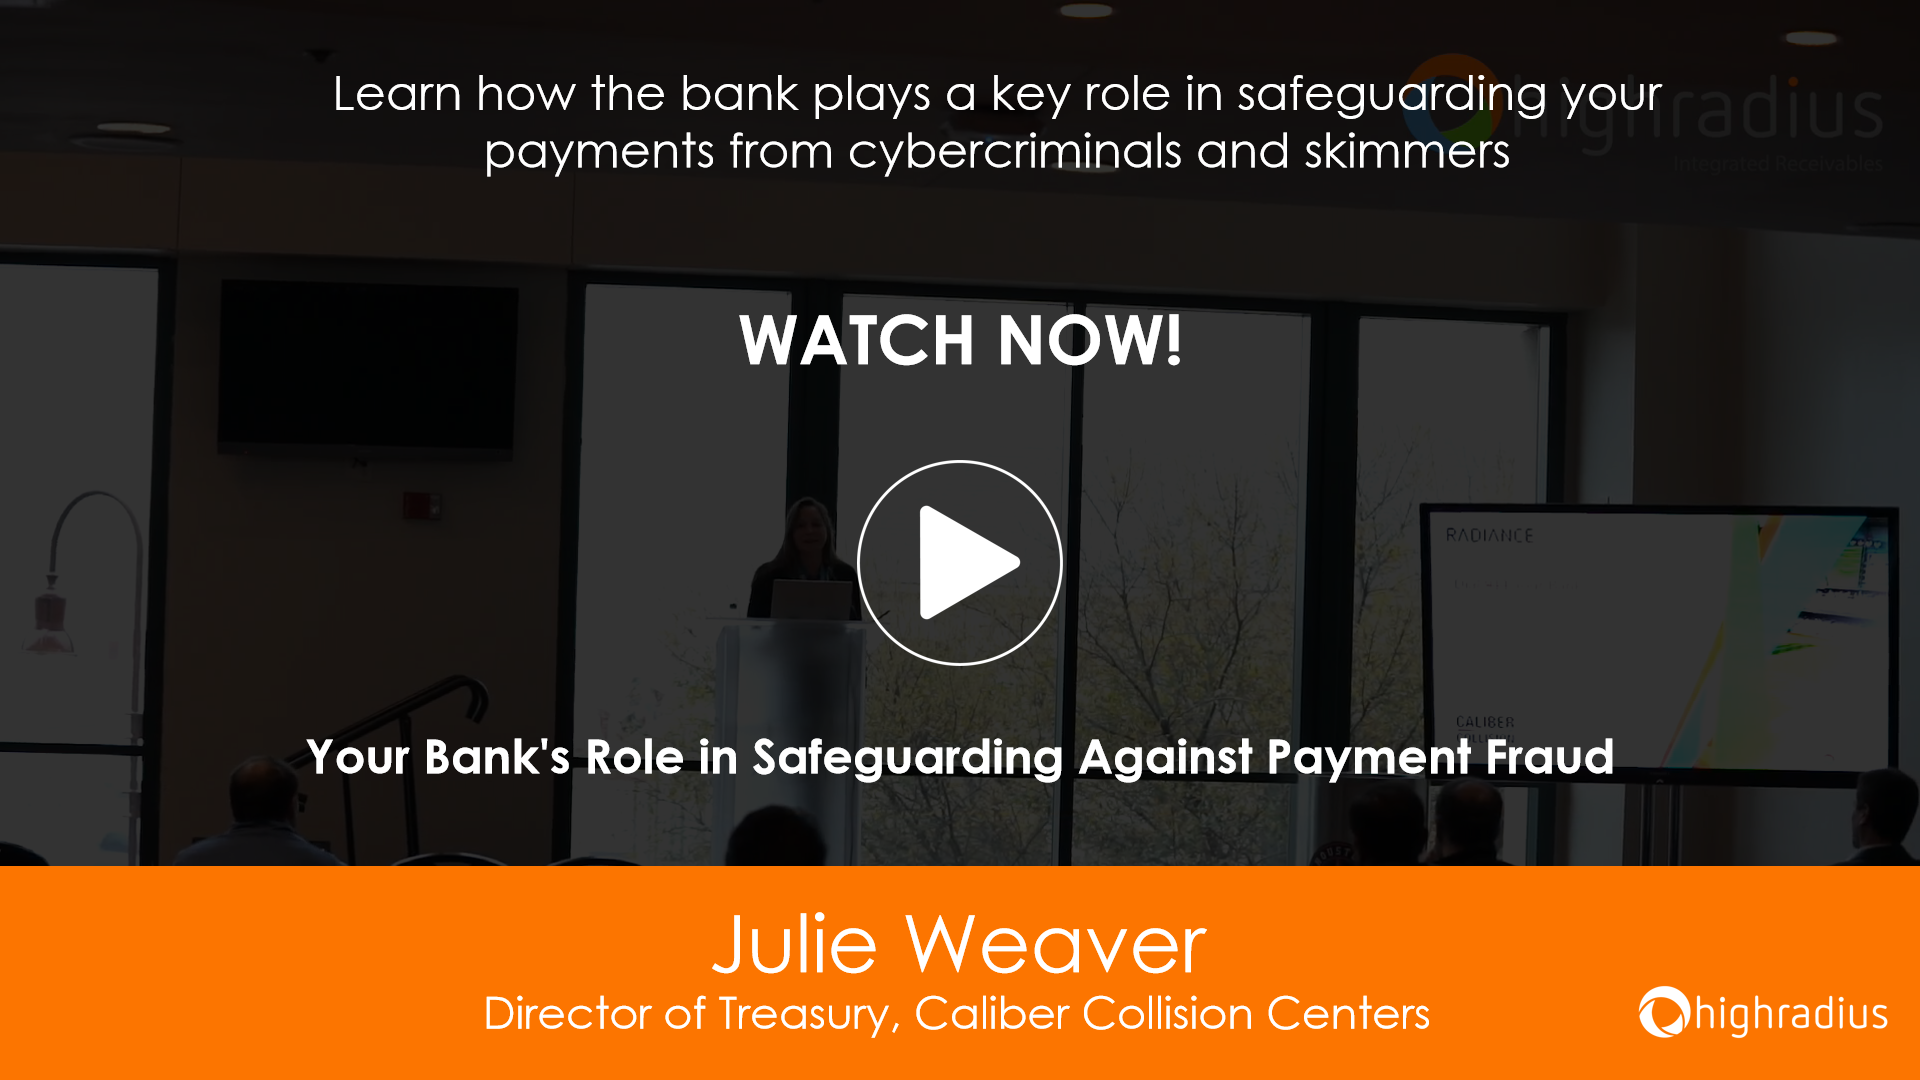 Your Bank's Role in Safeguarding Against Payment Fraud